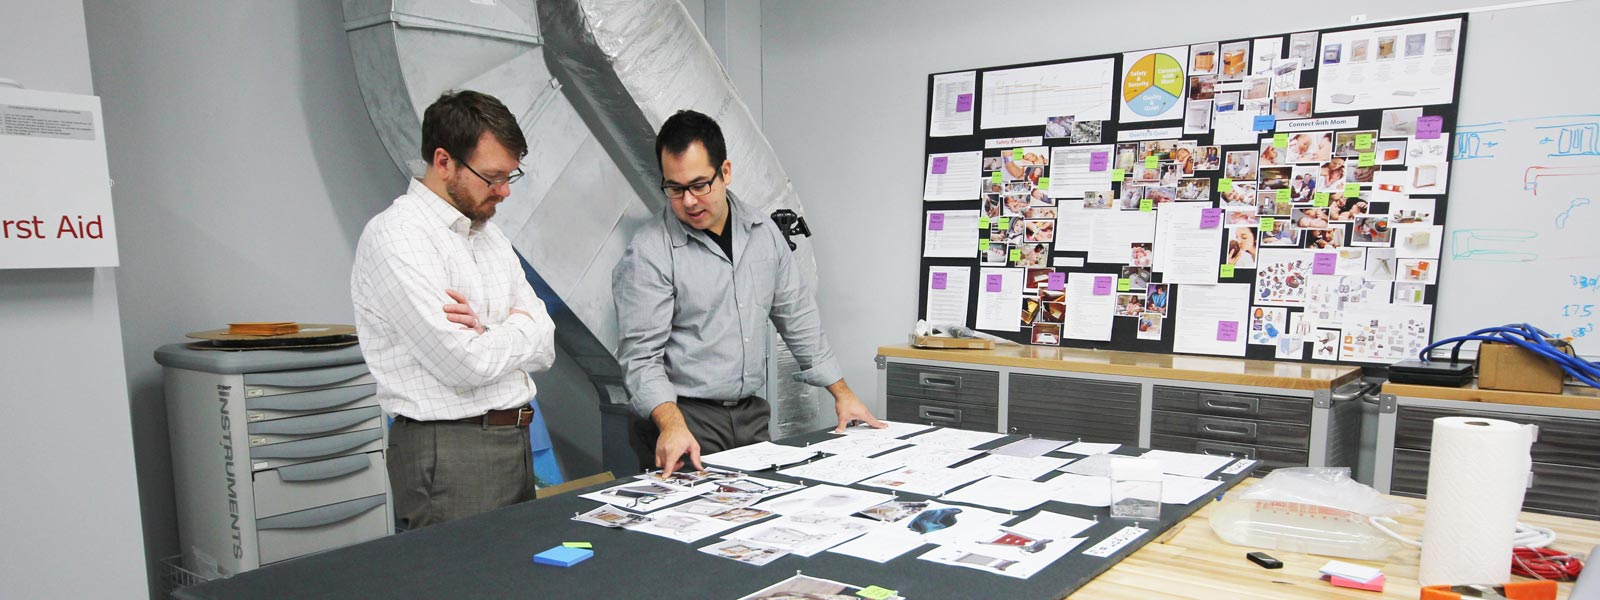 Bryce Porter Reviewing Design Concepts